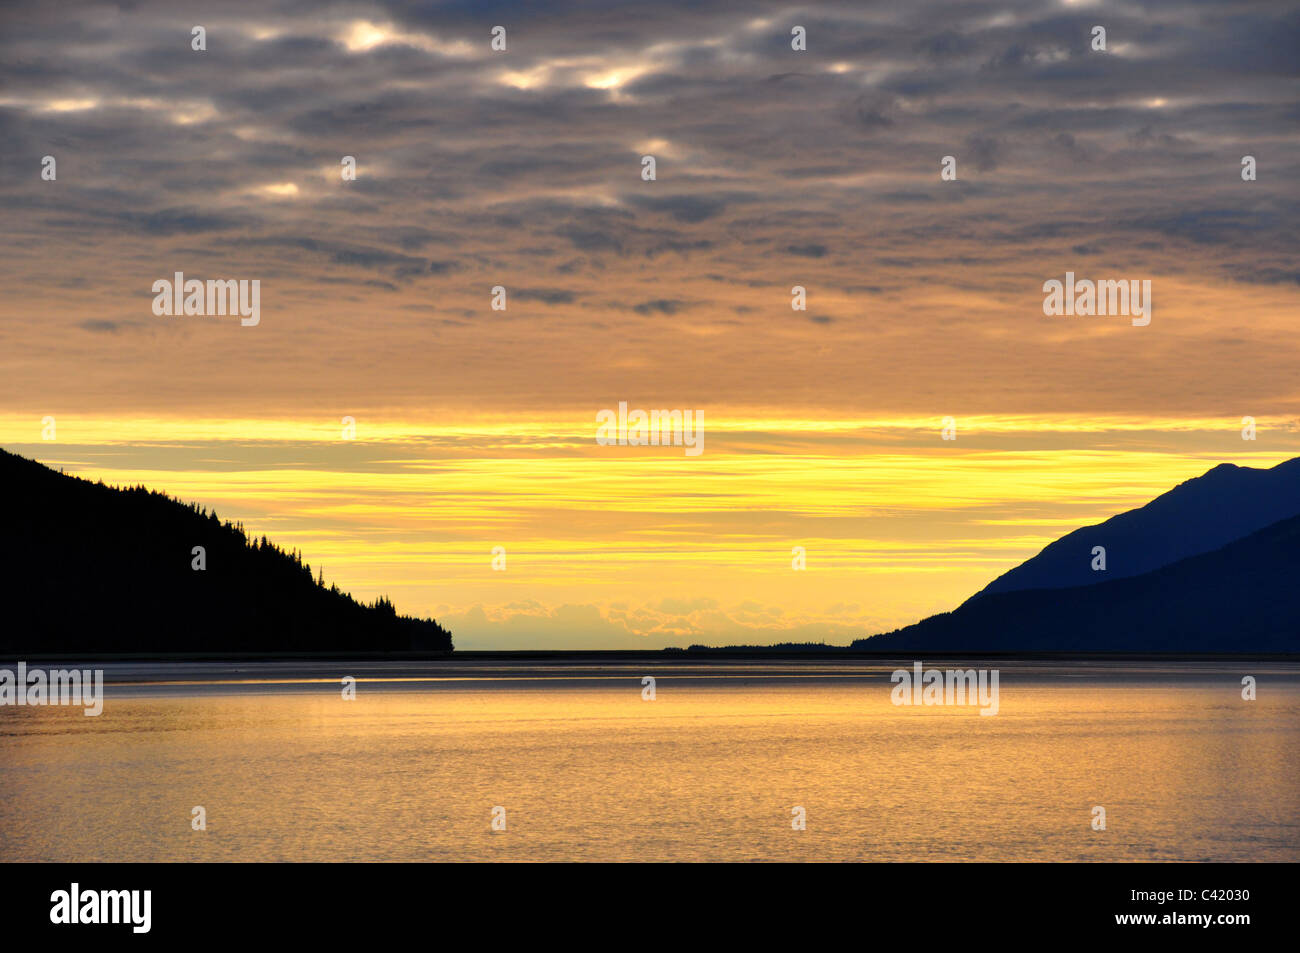 Overcast sky with Golden sunset - Stock Image